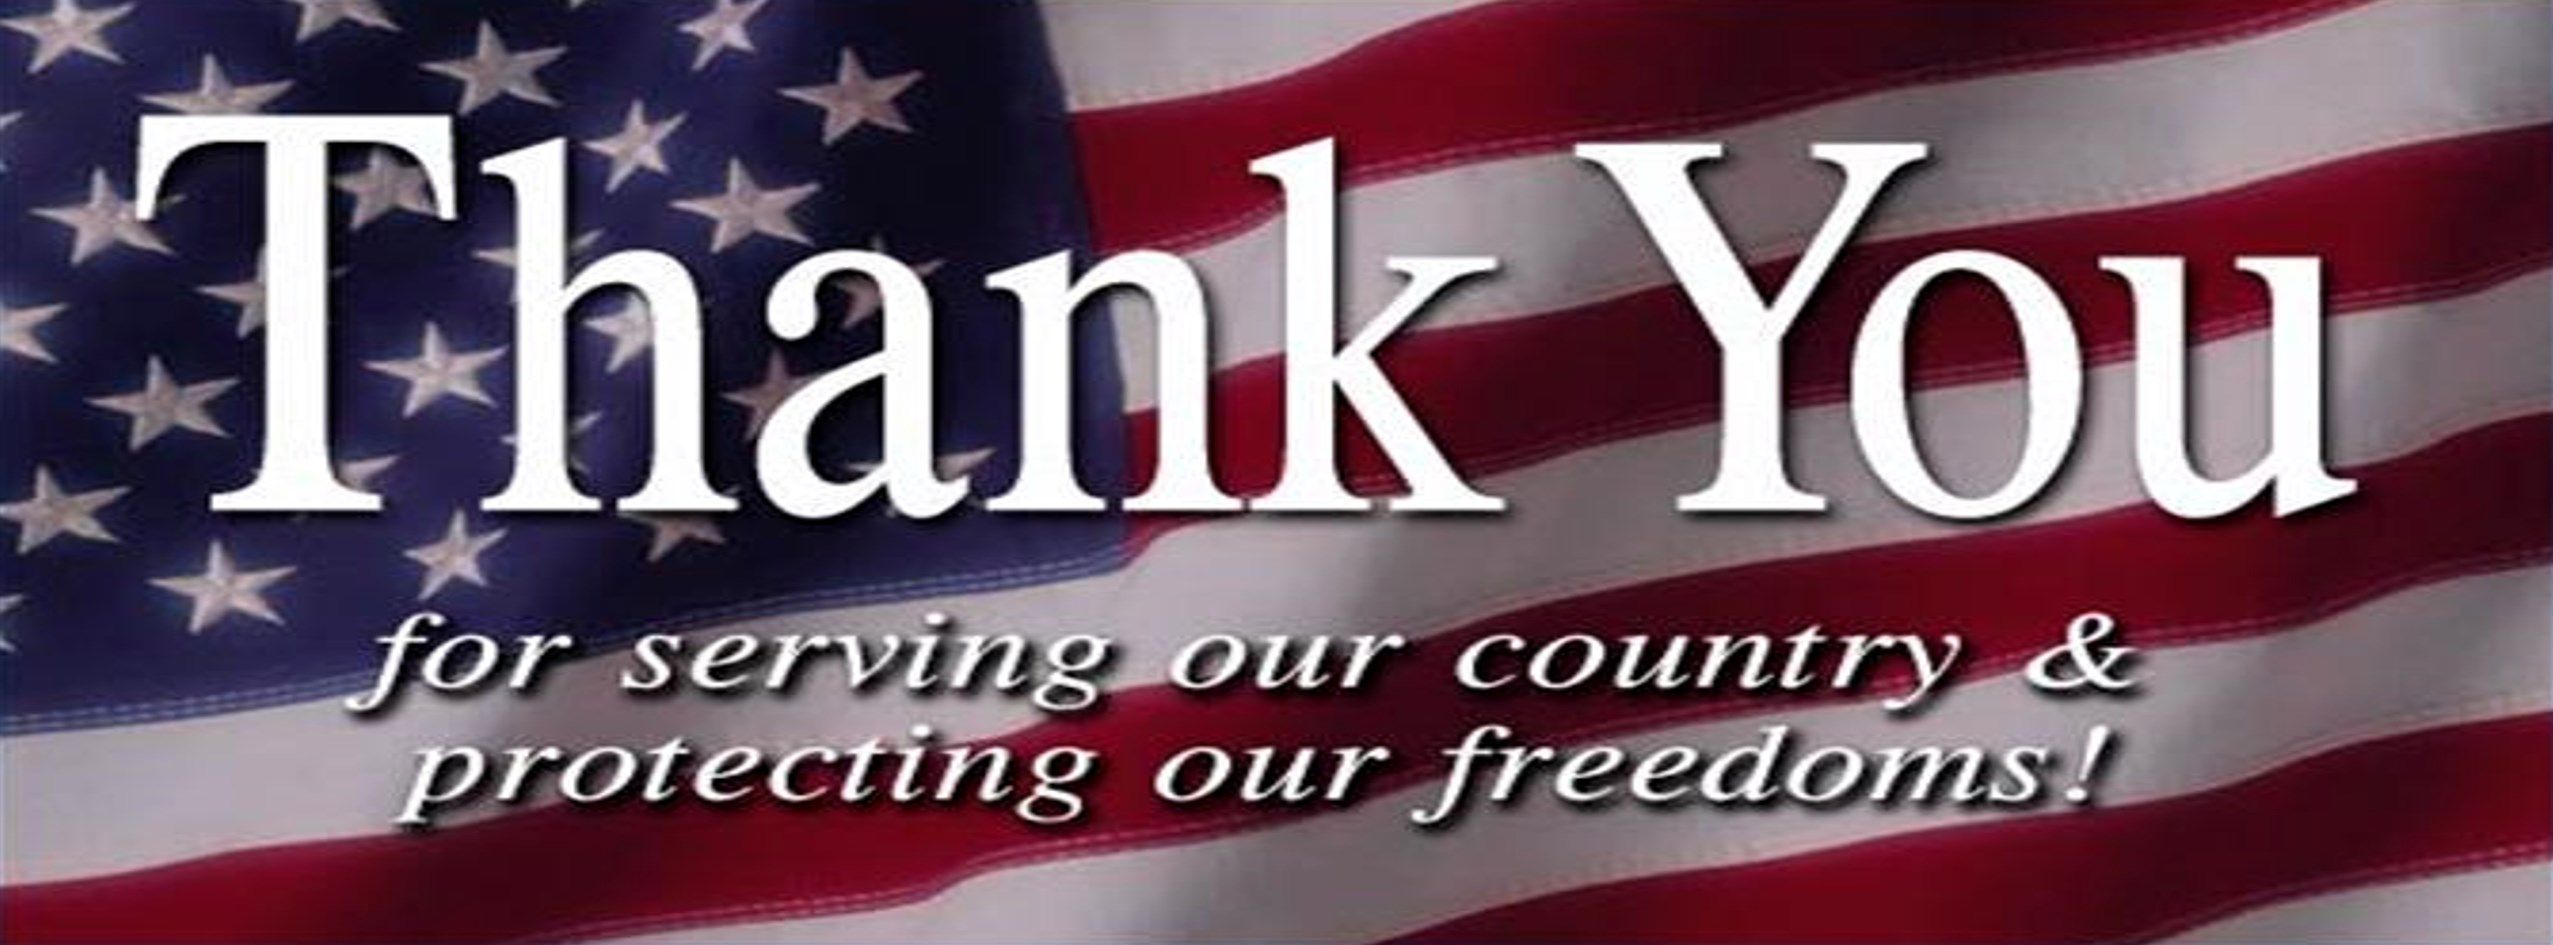 Thank You For Serving Our Country Facebook Cover Art Pinterest